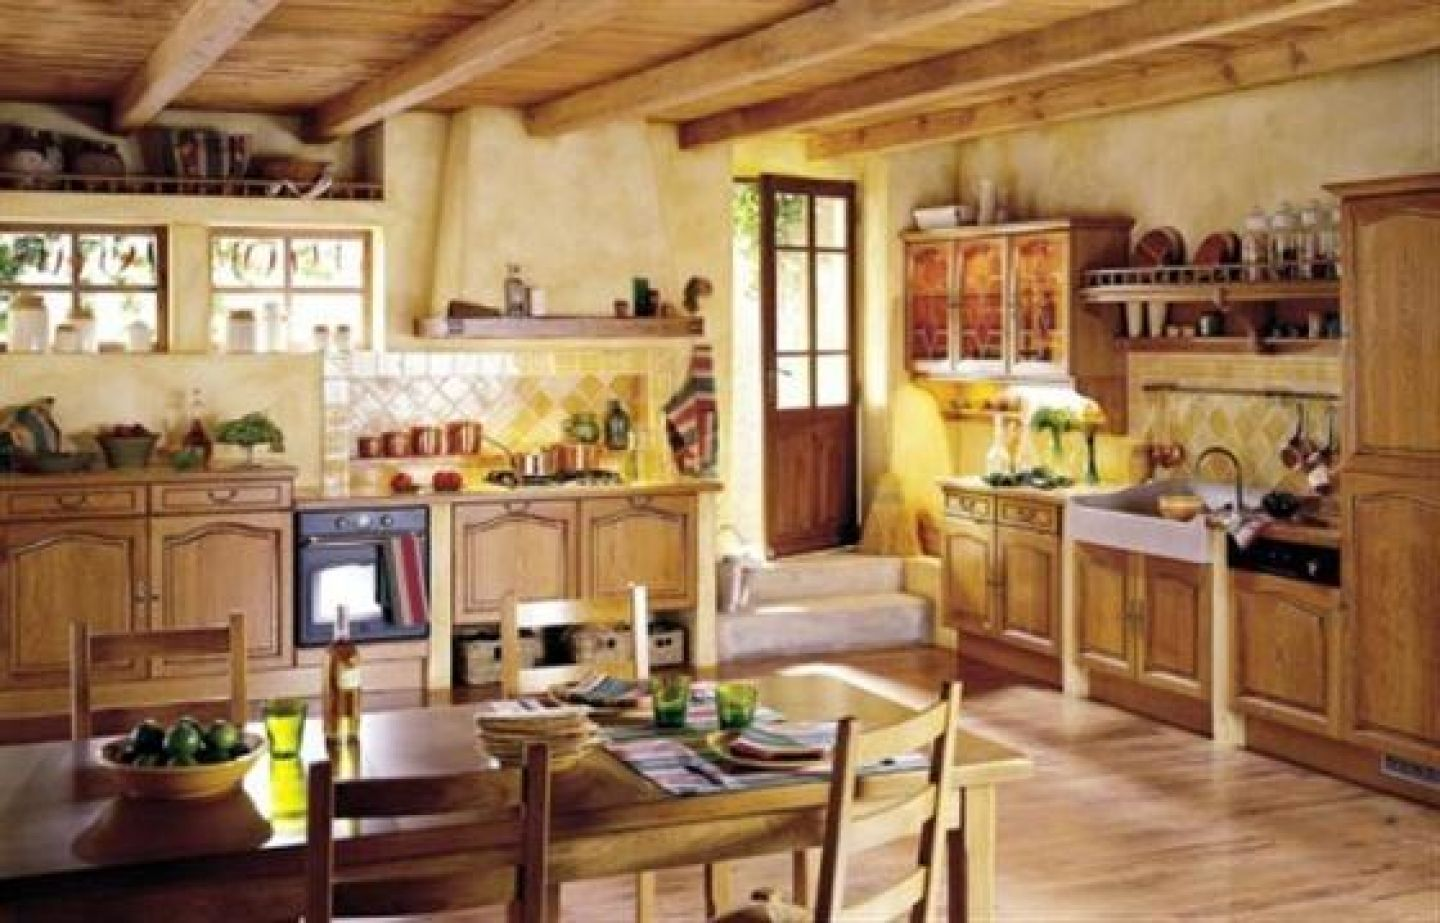 Beautiful Country Home Interiors beautiful country home interior design ideas photos - interior